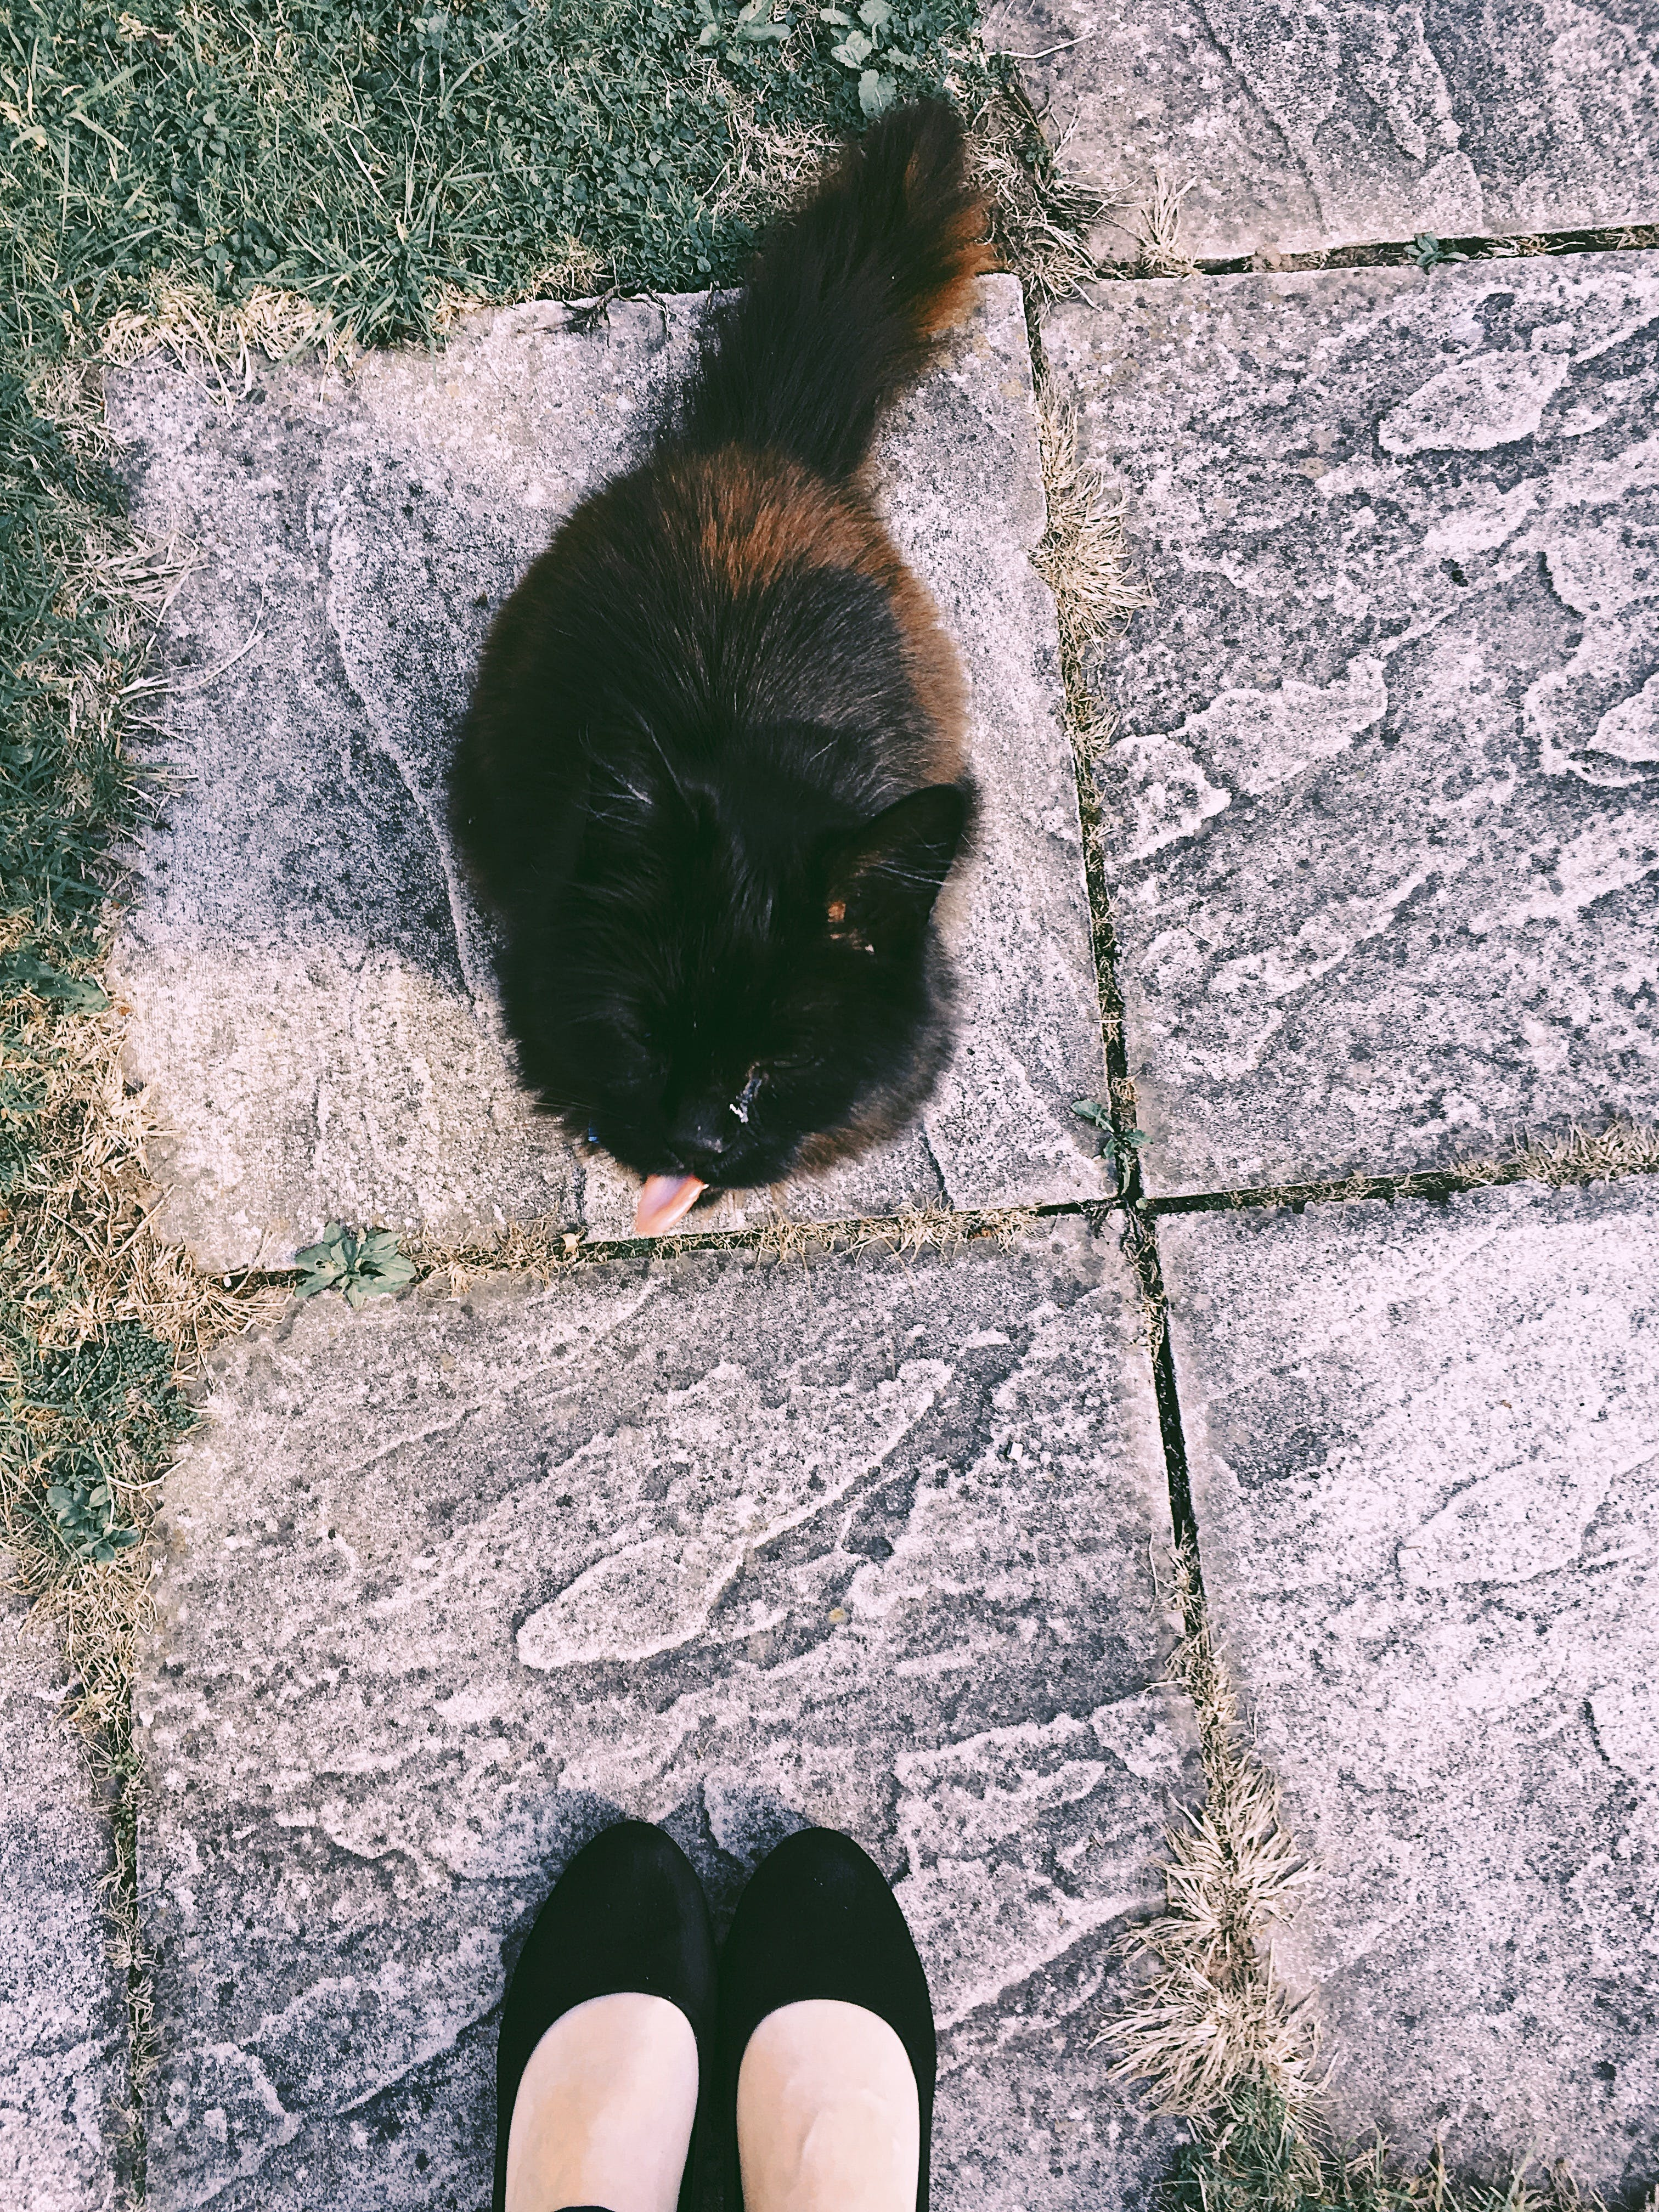 Black and Brown Cat Sitting on Ground Near Woman